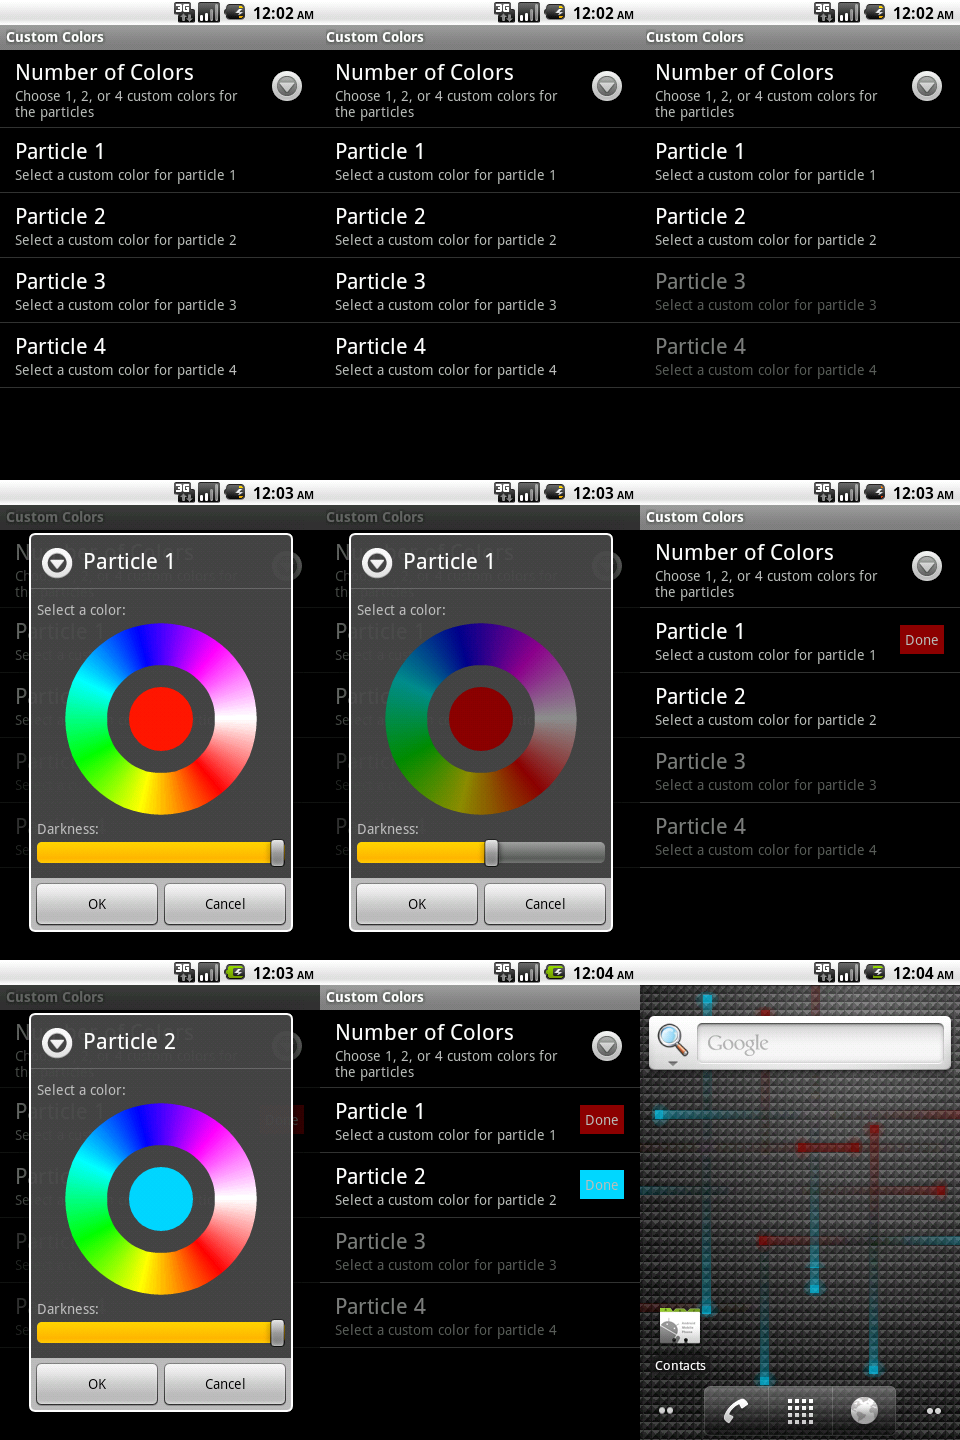 Follow this like a story board, left to right top to bottom. Shows the process of selecting custom colors